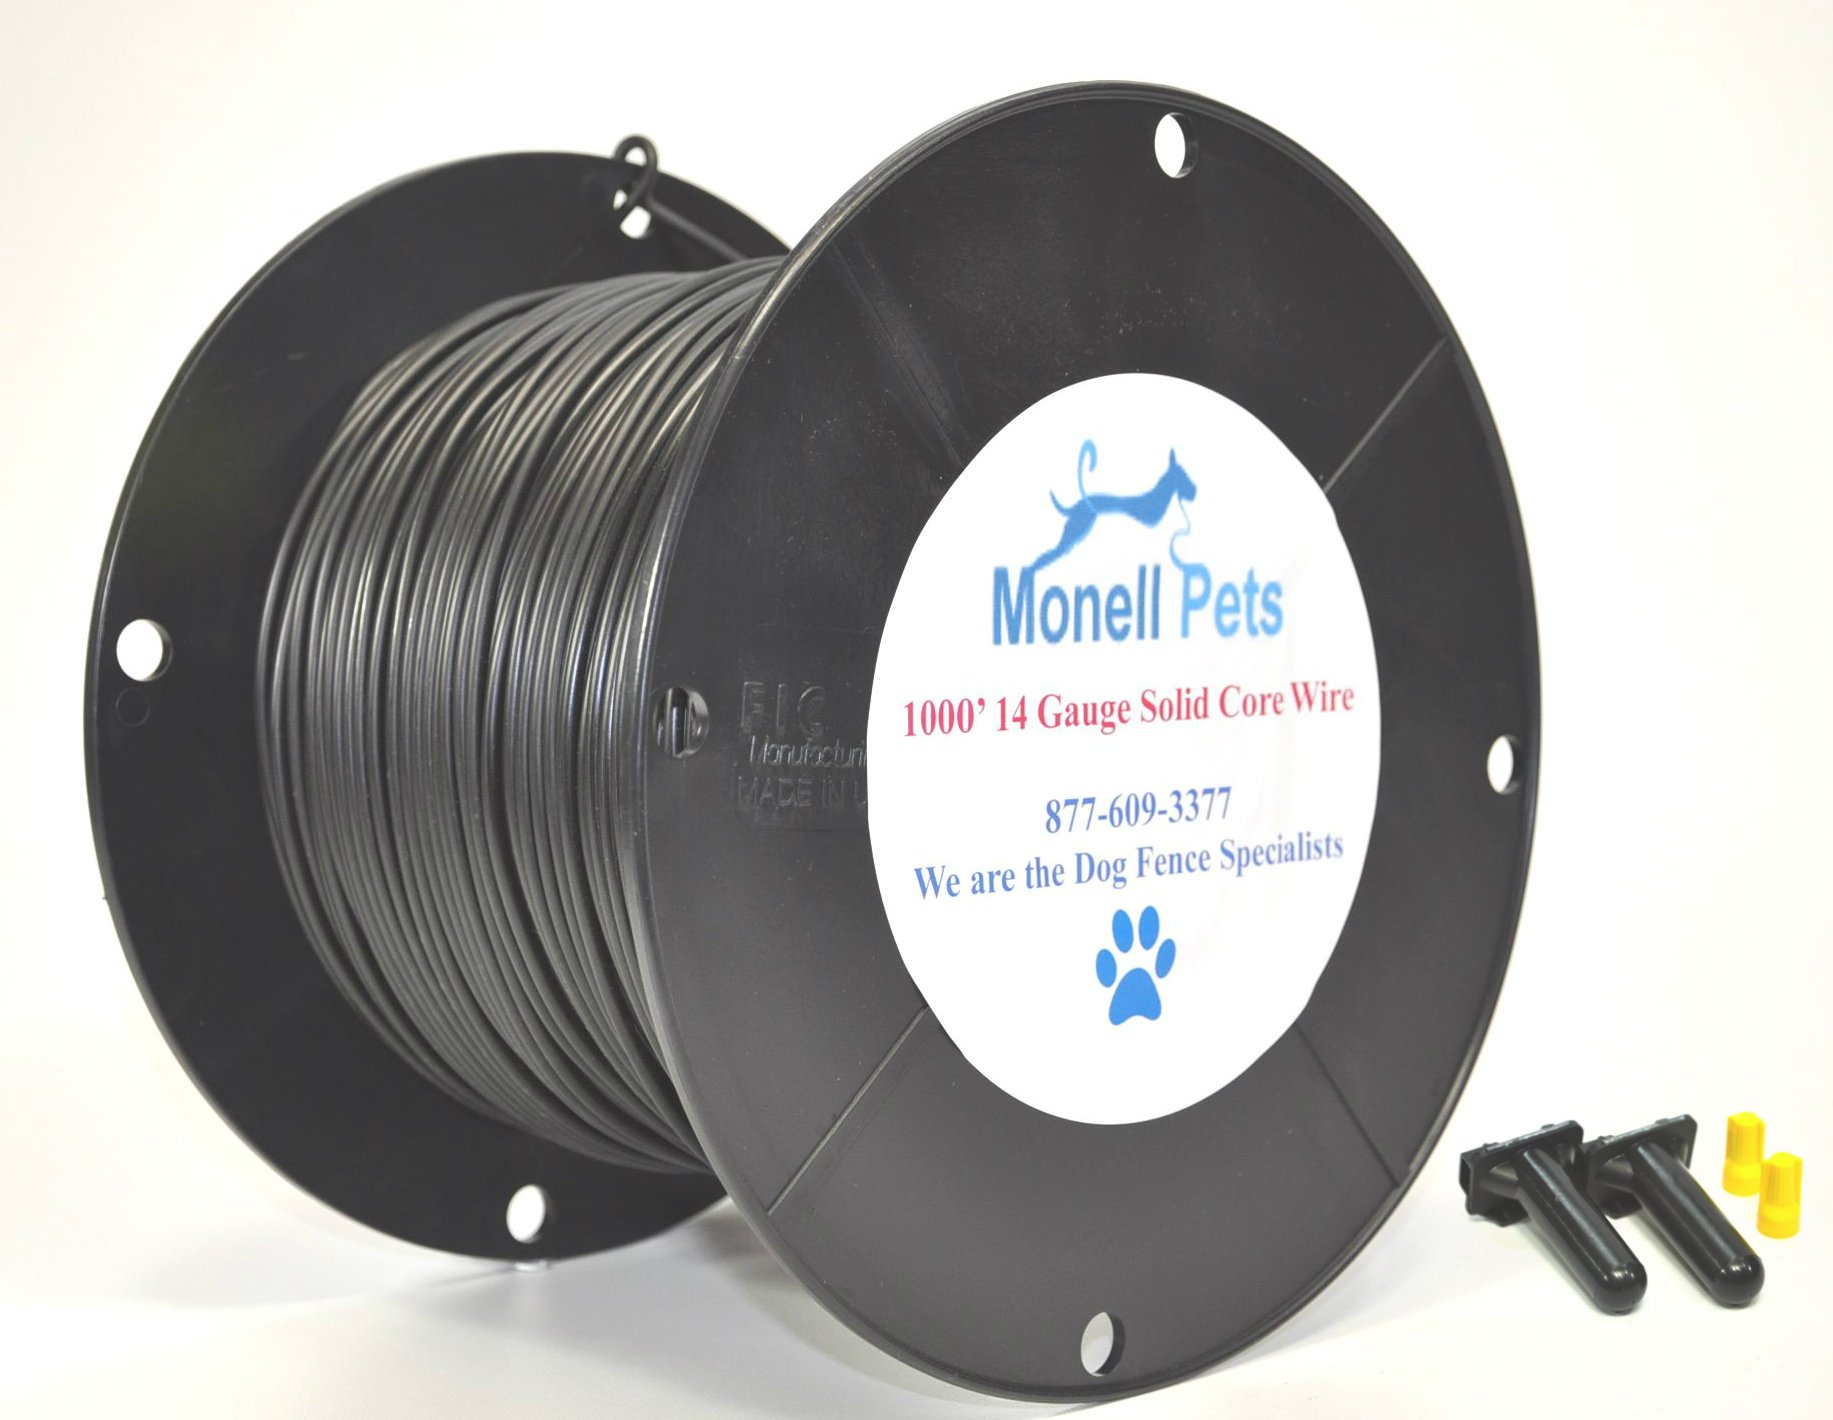 14 Gauge Superior Pro Heavy Duty Superior Pro Dog Fence Wire 1000 Ft by Monell Pets by Monell